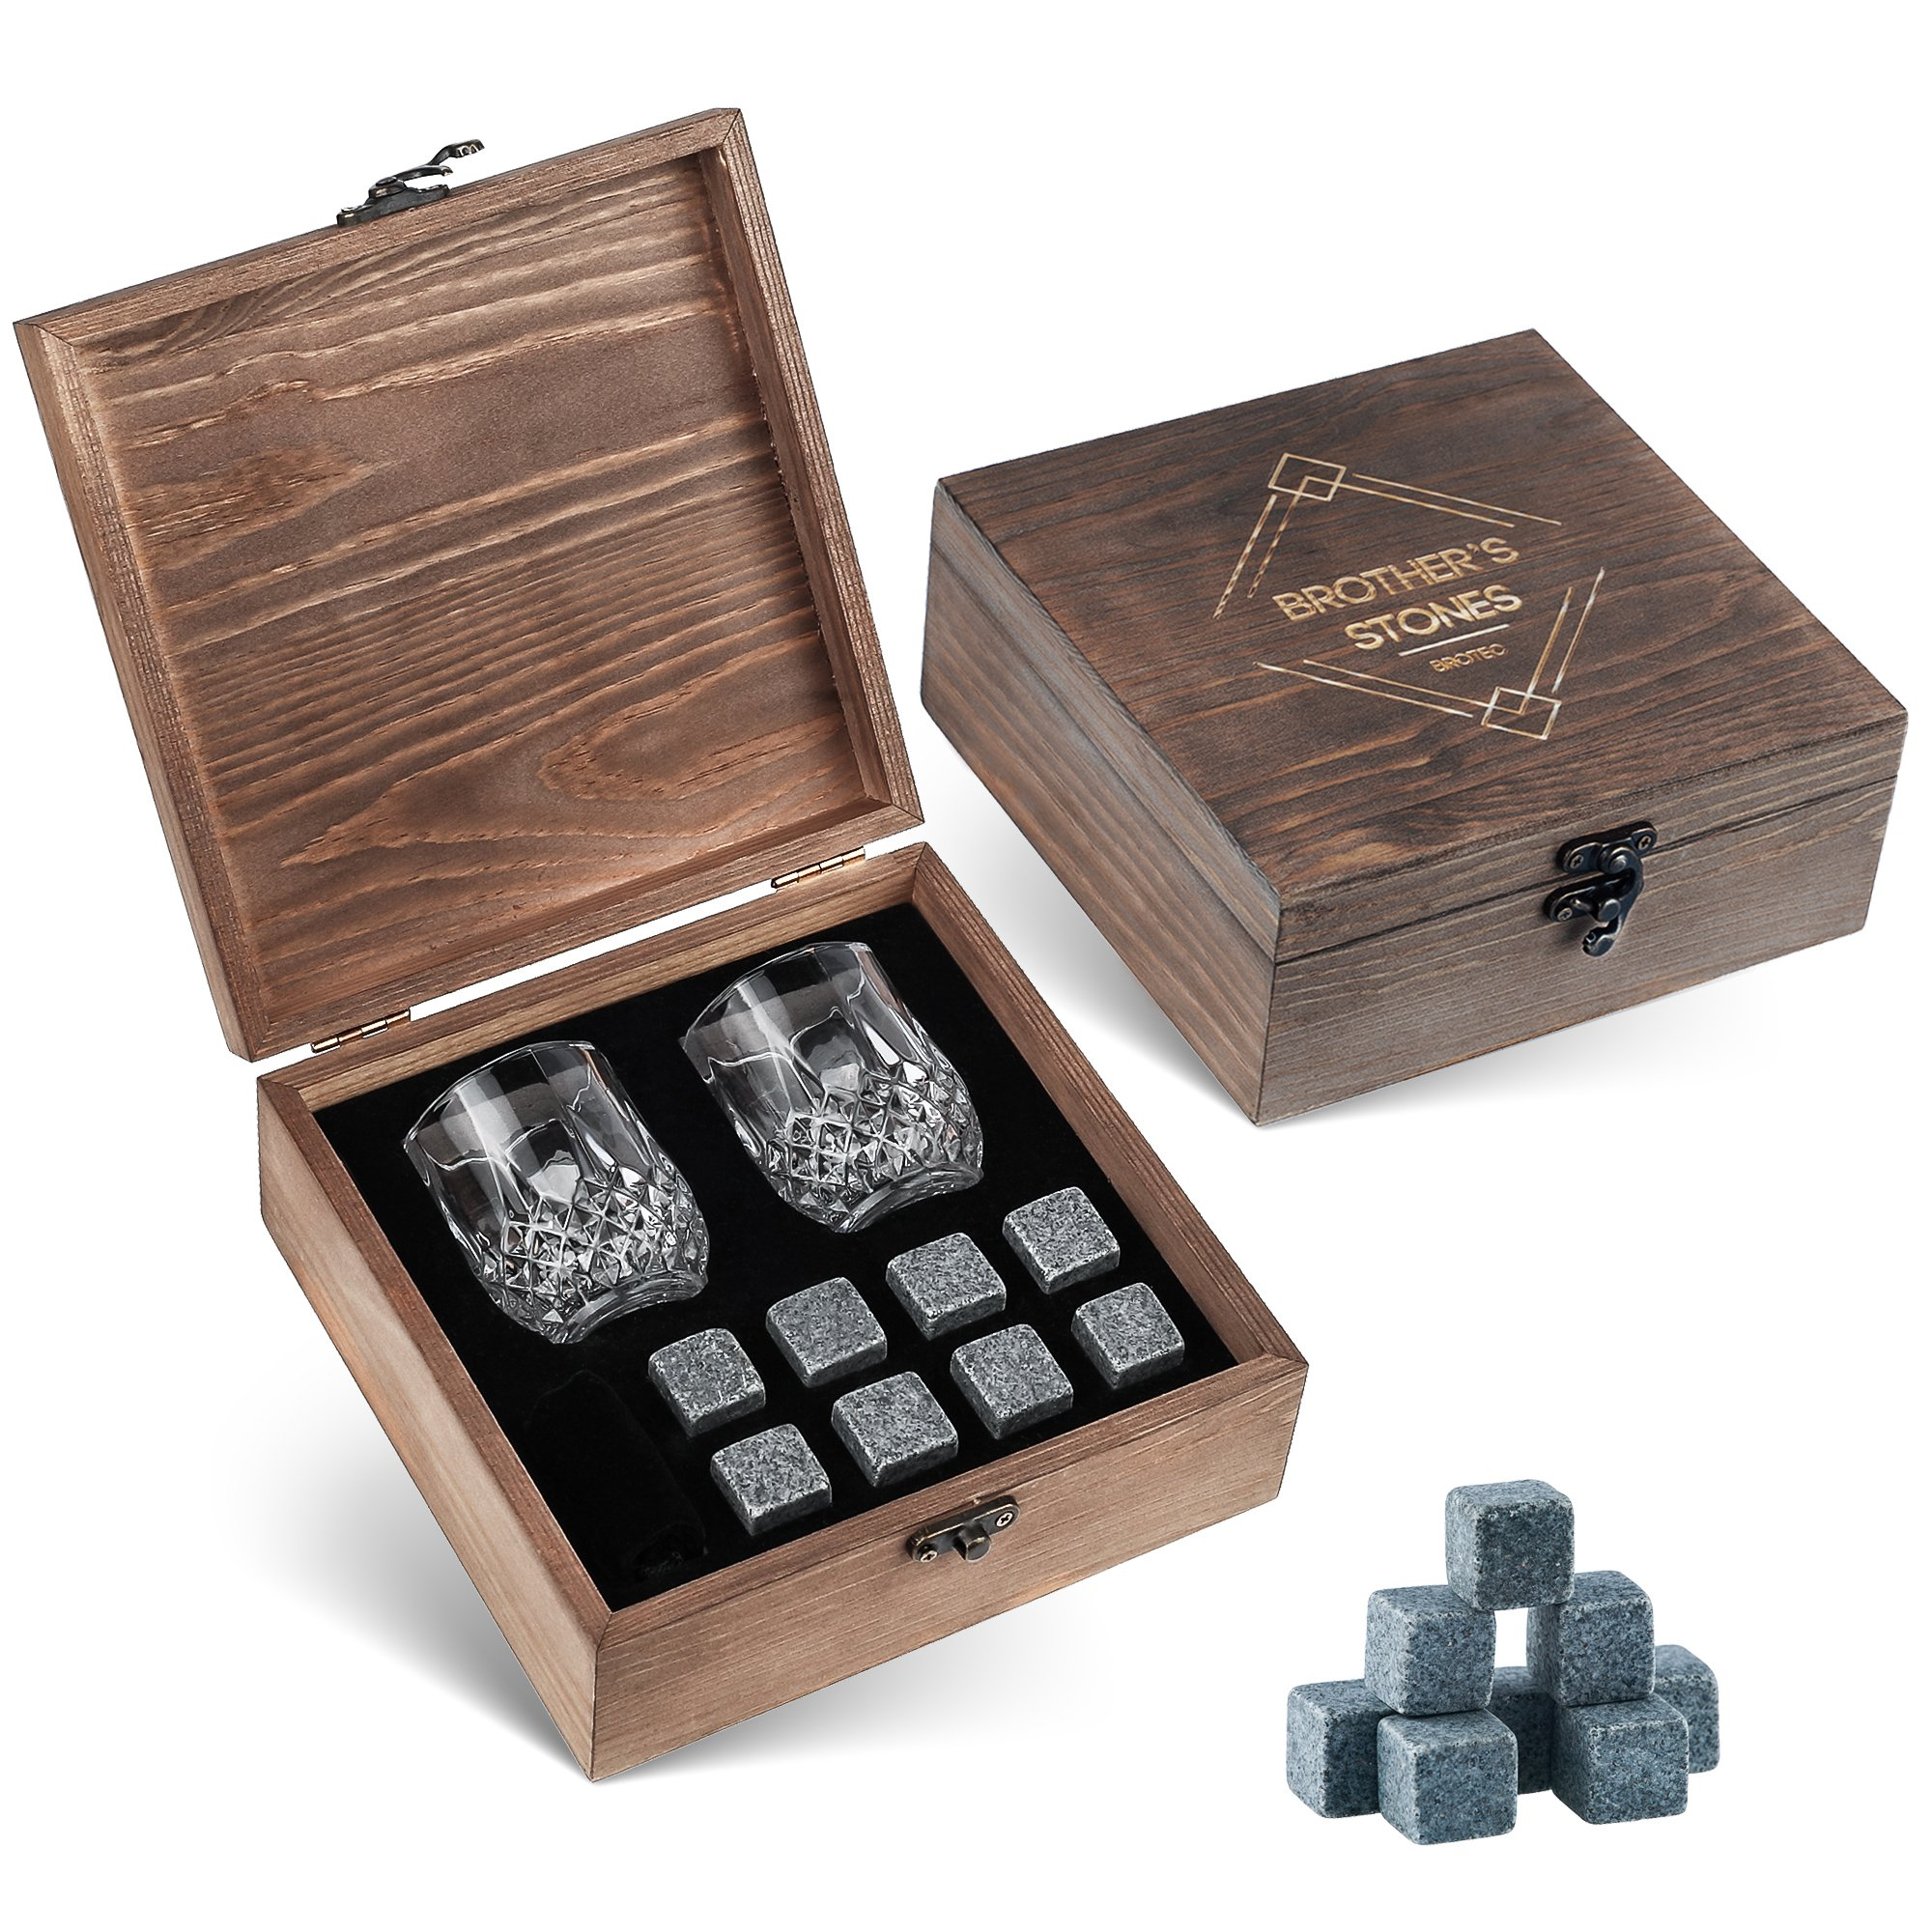 whiskey stones gift set 8 granite chilling whisky rocks 2 crystal shot glasses in wooden box premium bar accessories for the best tasting beverages by